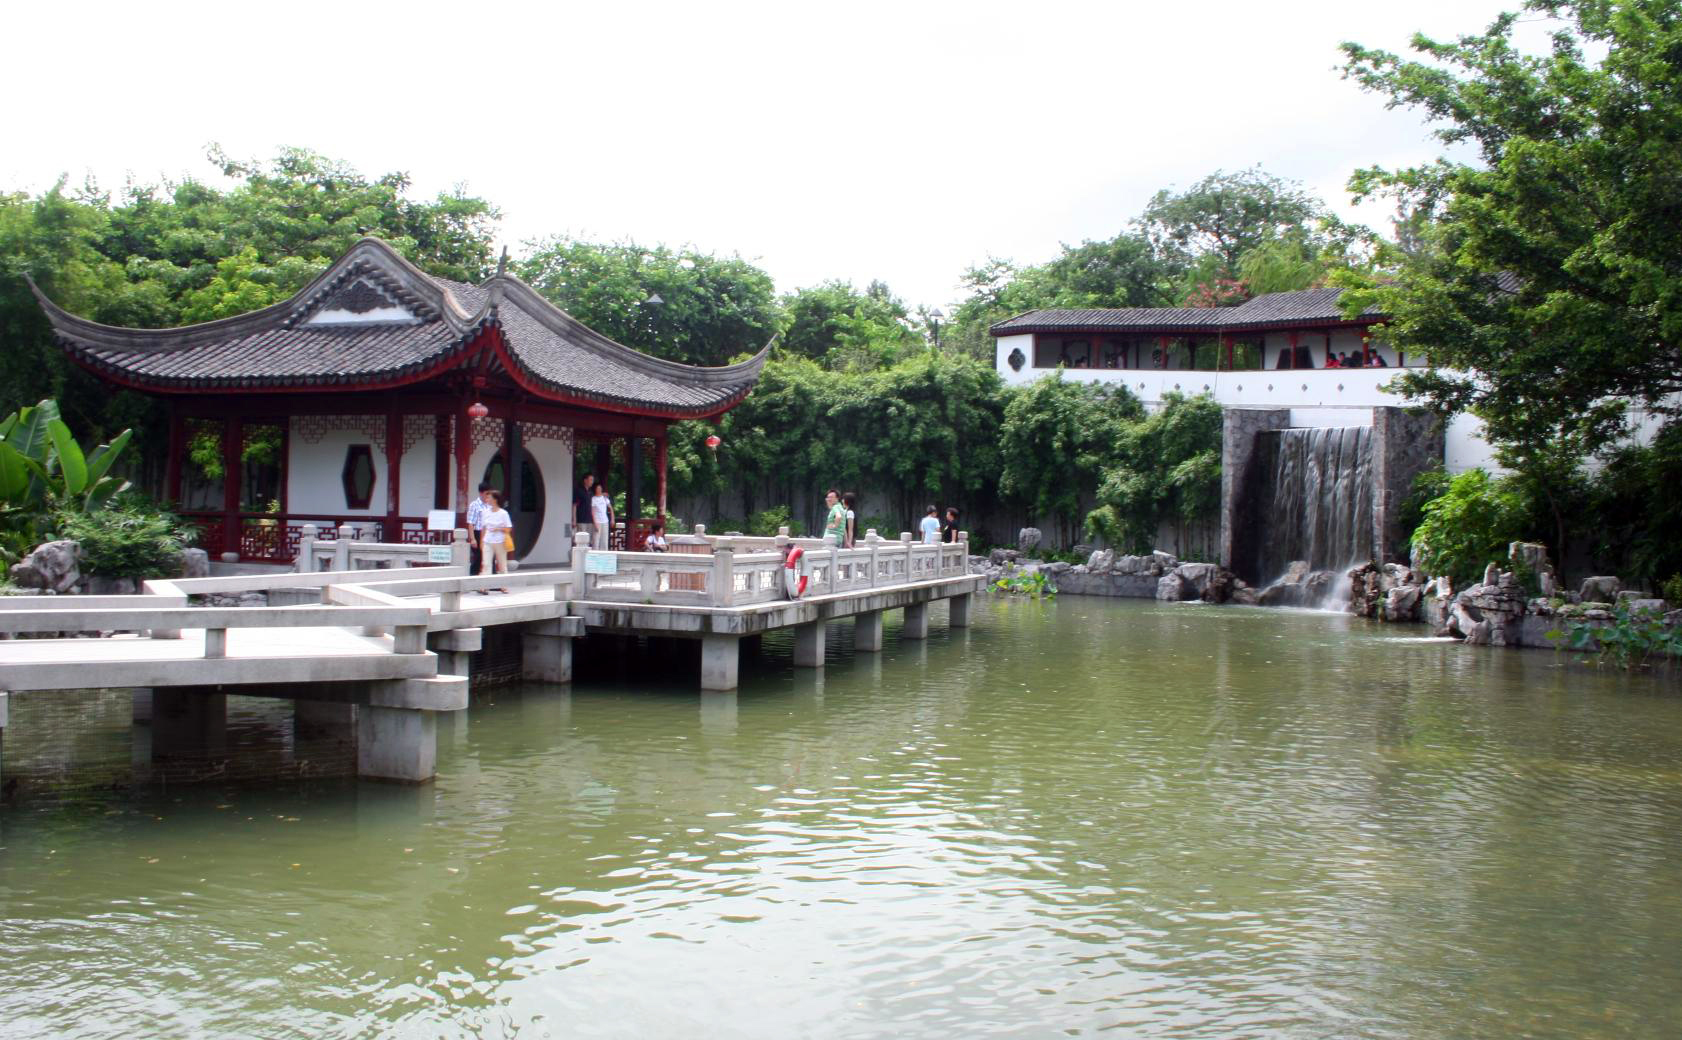 Kowloon_Walled_City_Park_九龍寨城_02